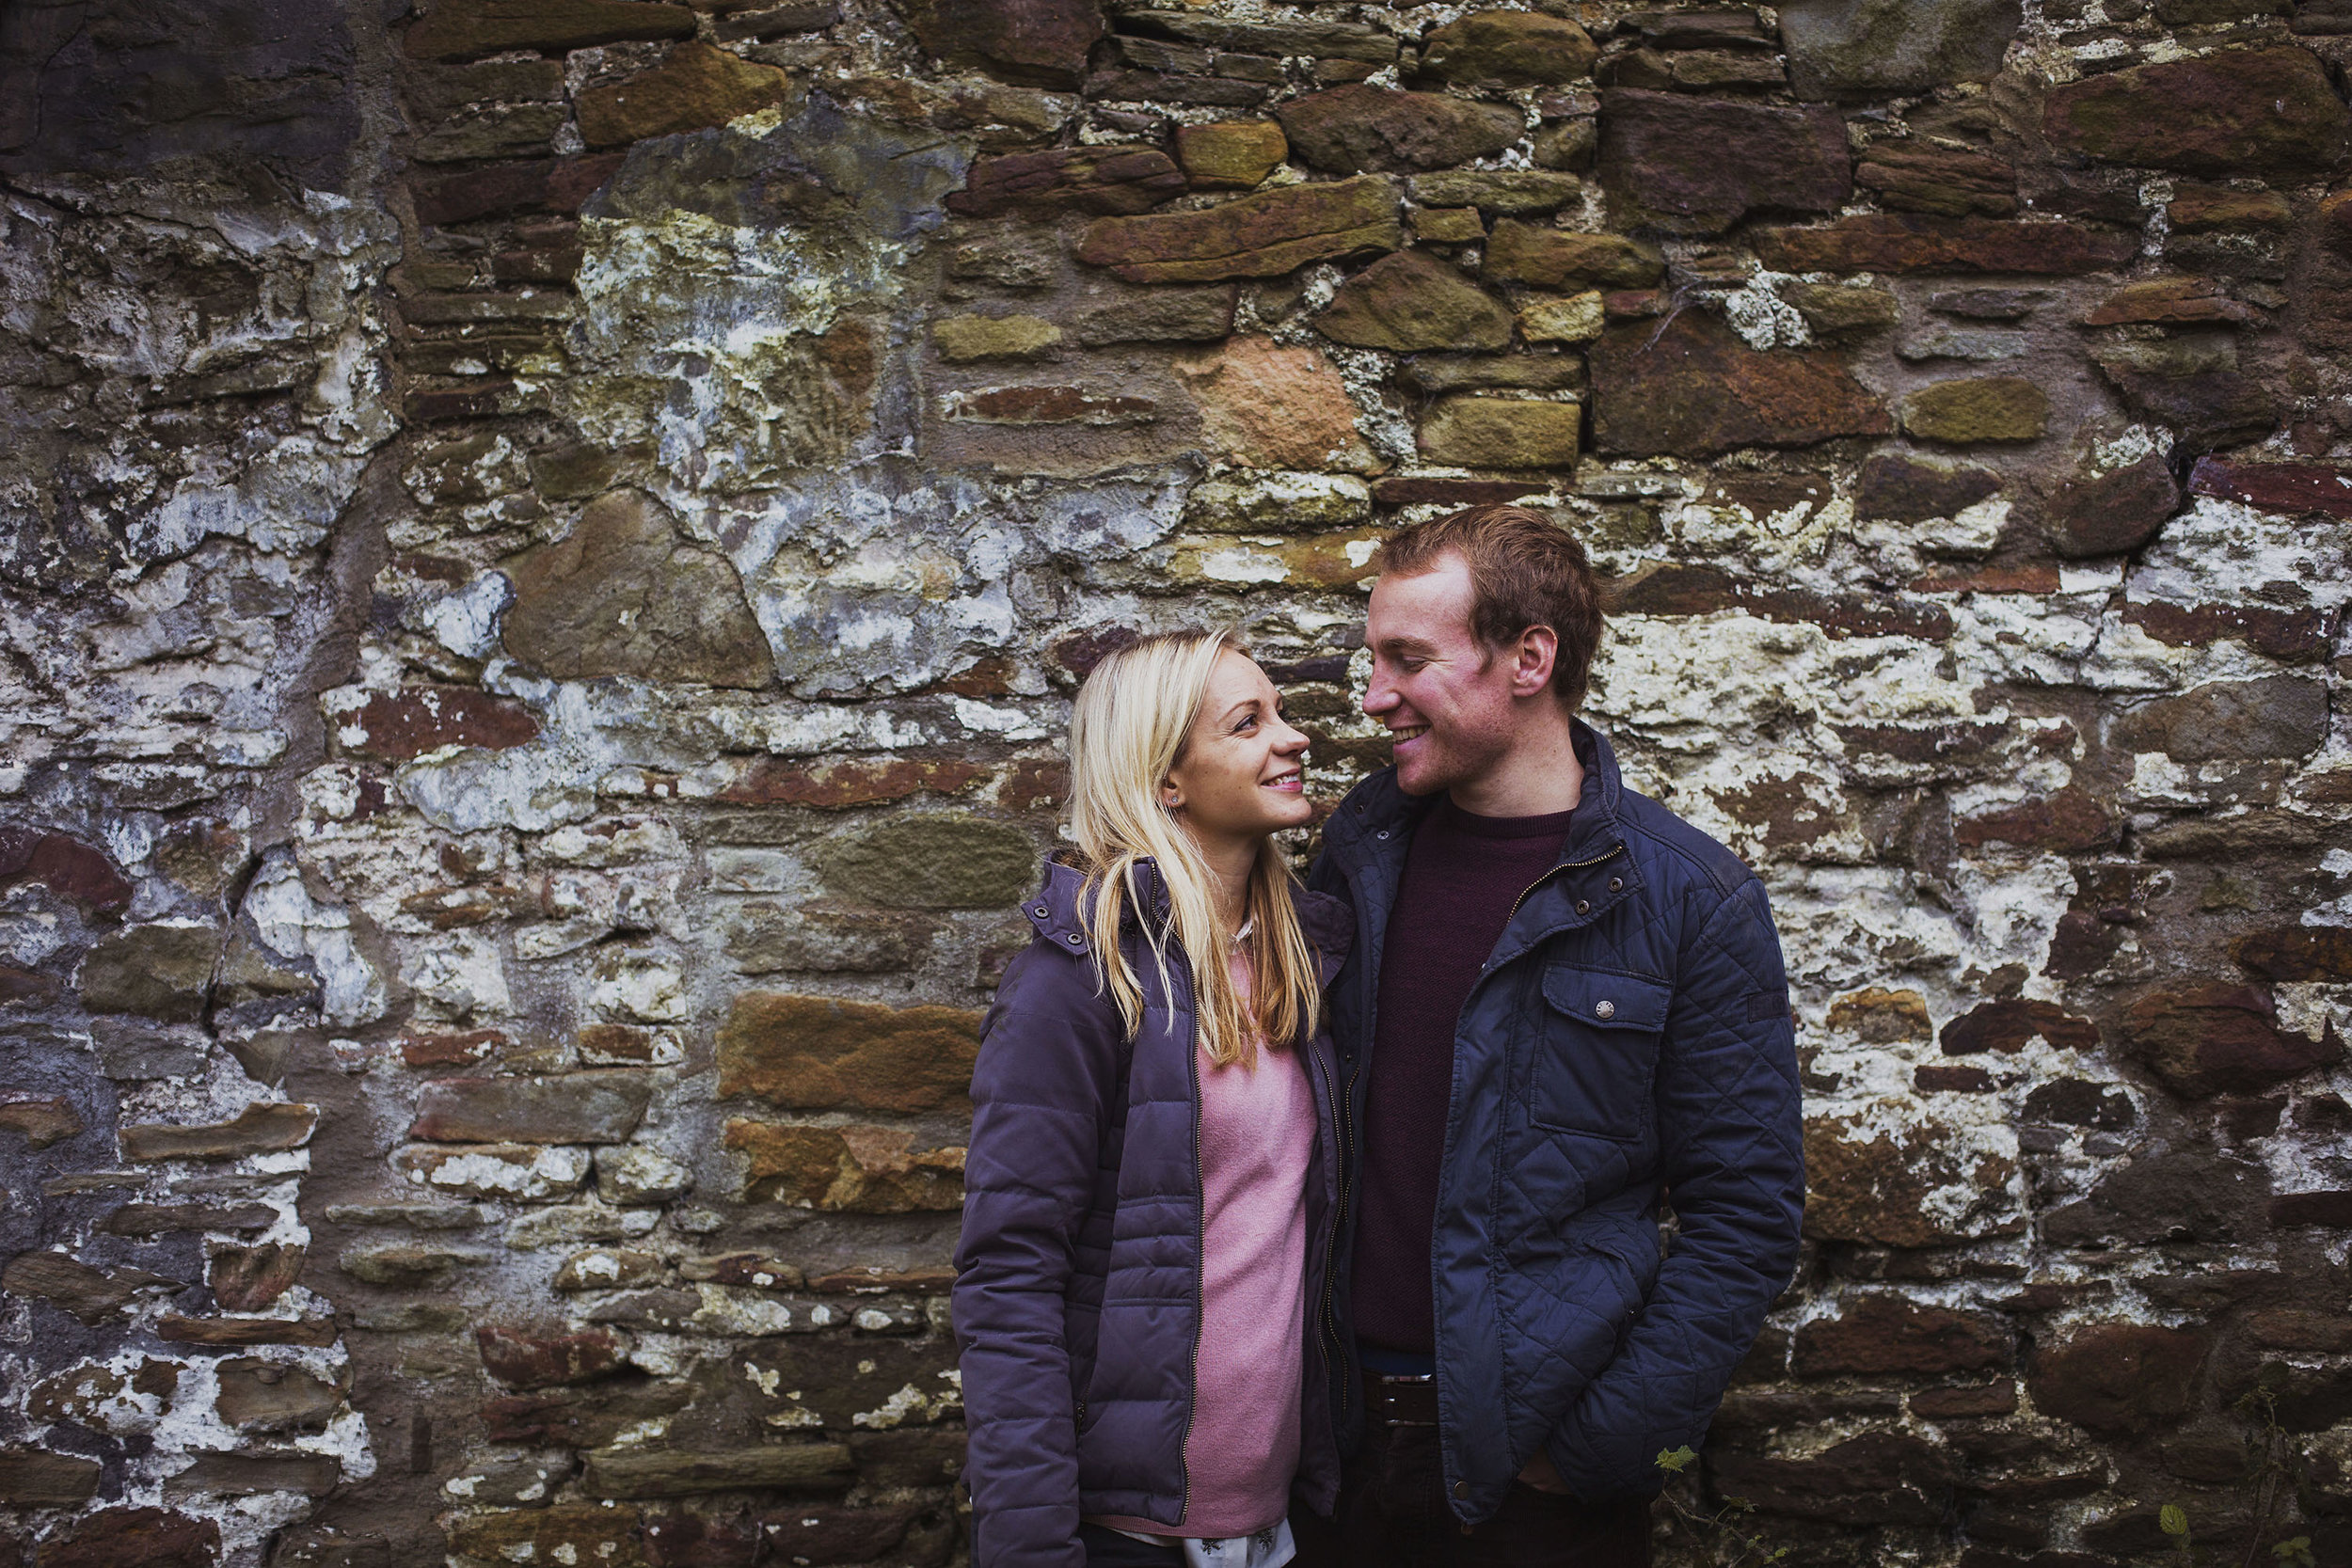 Chris_and_Lucy_Prewed_48.jpg